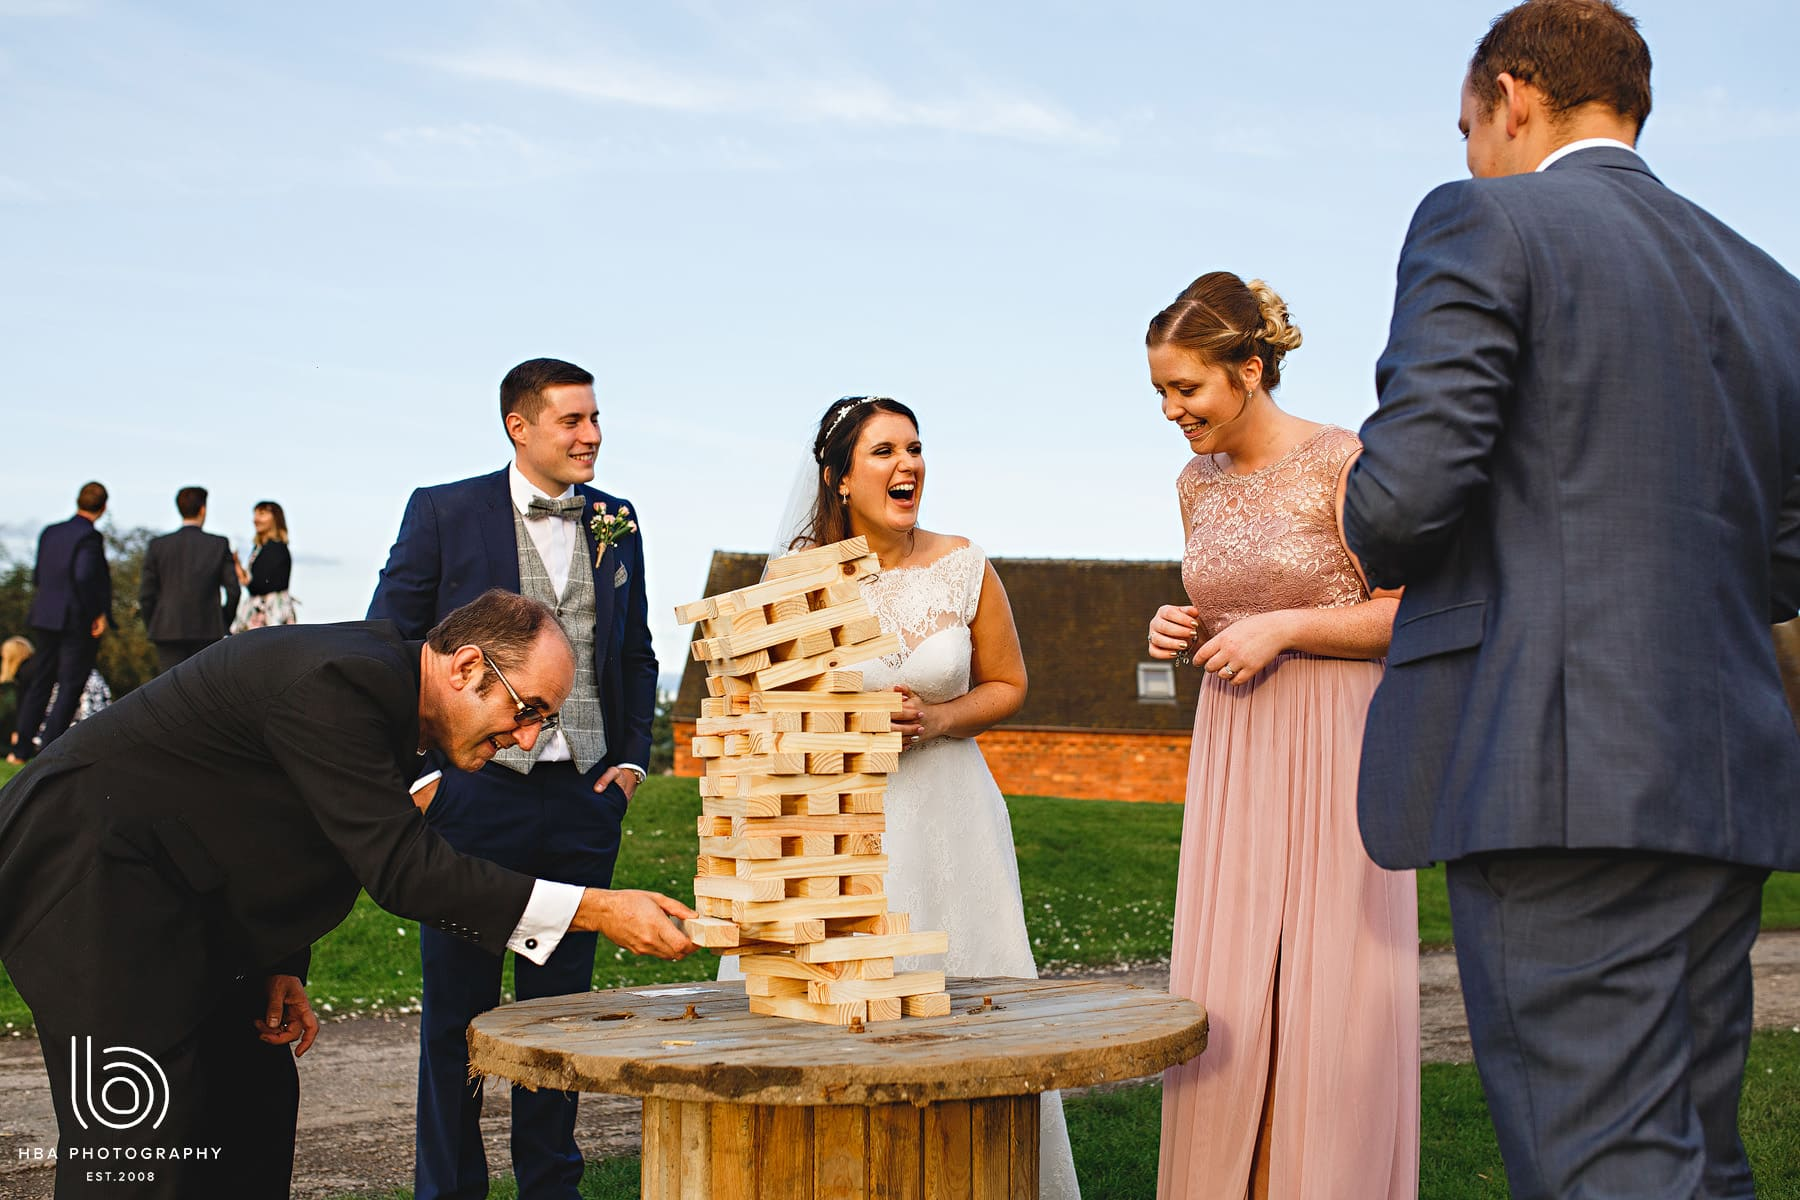 The bride & groom and guests playing games